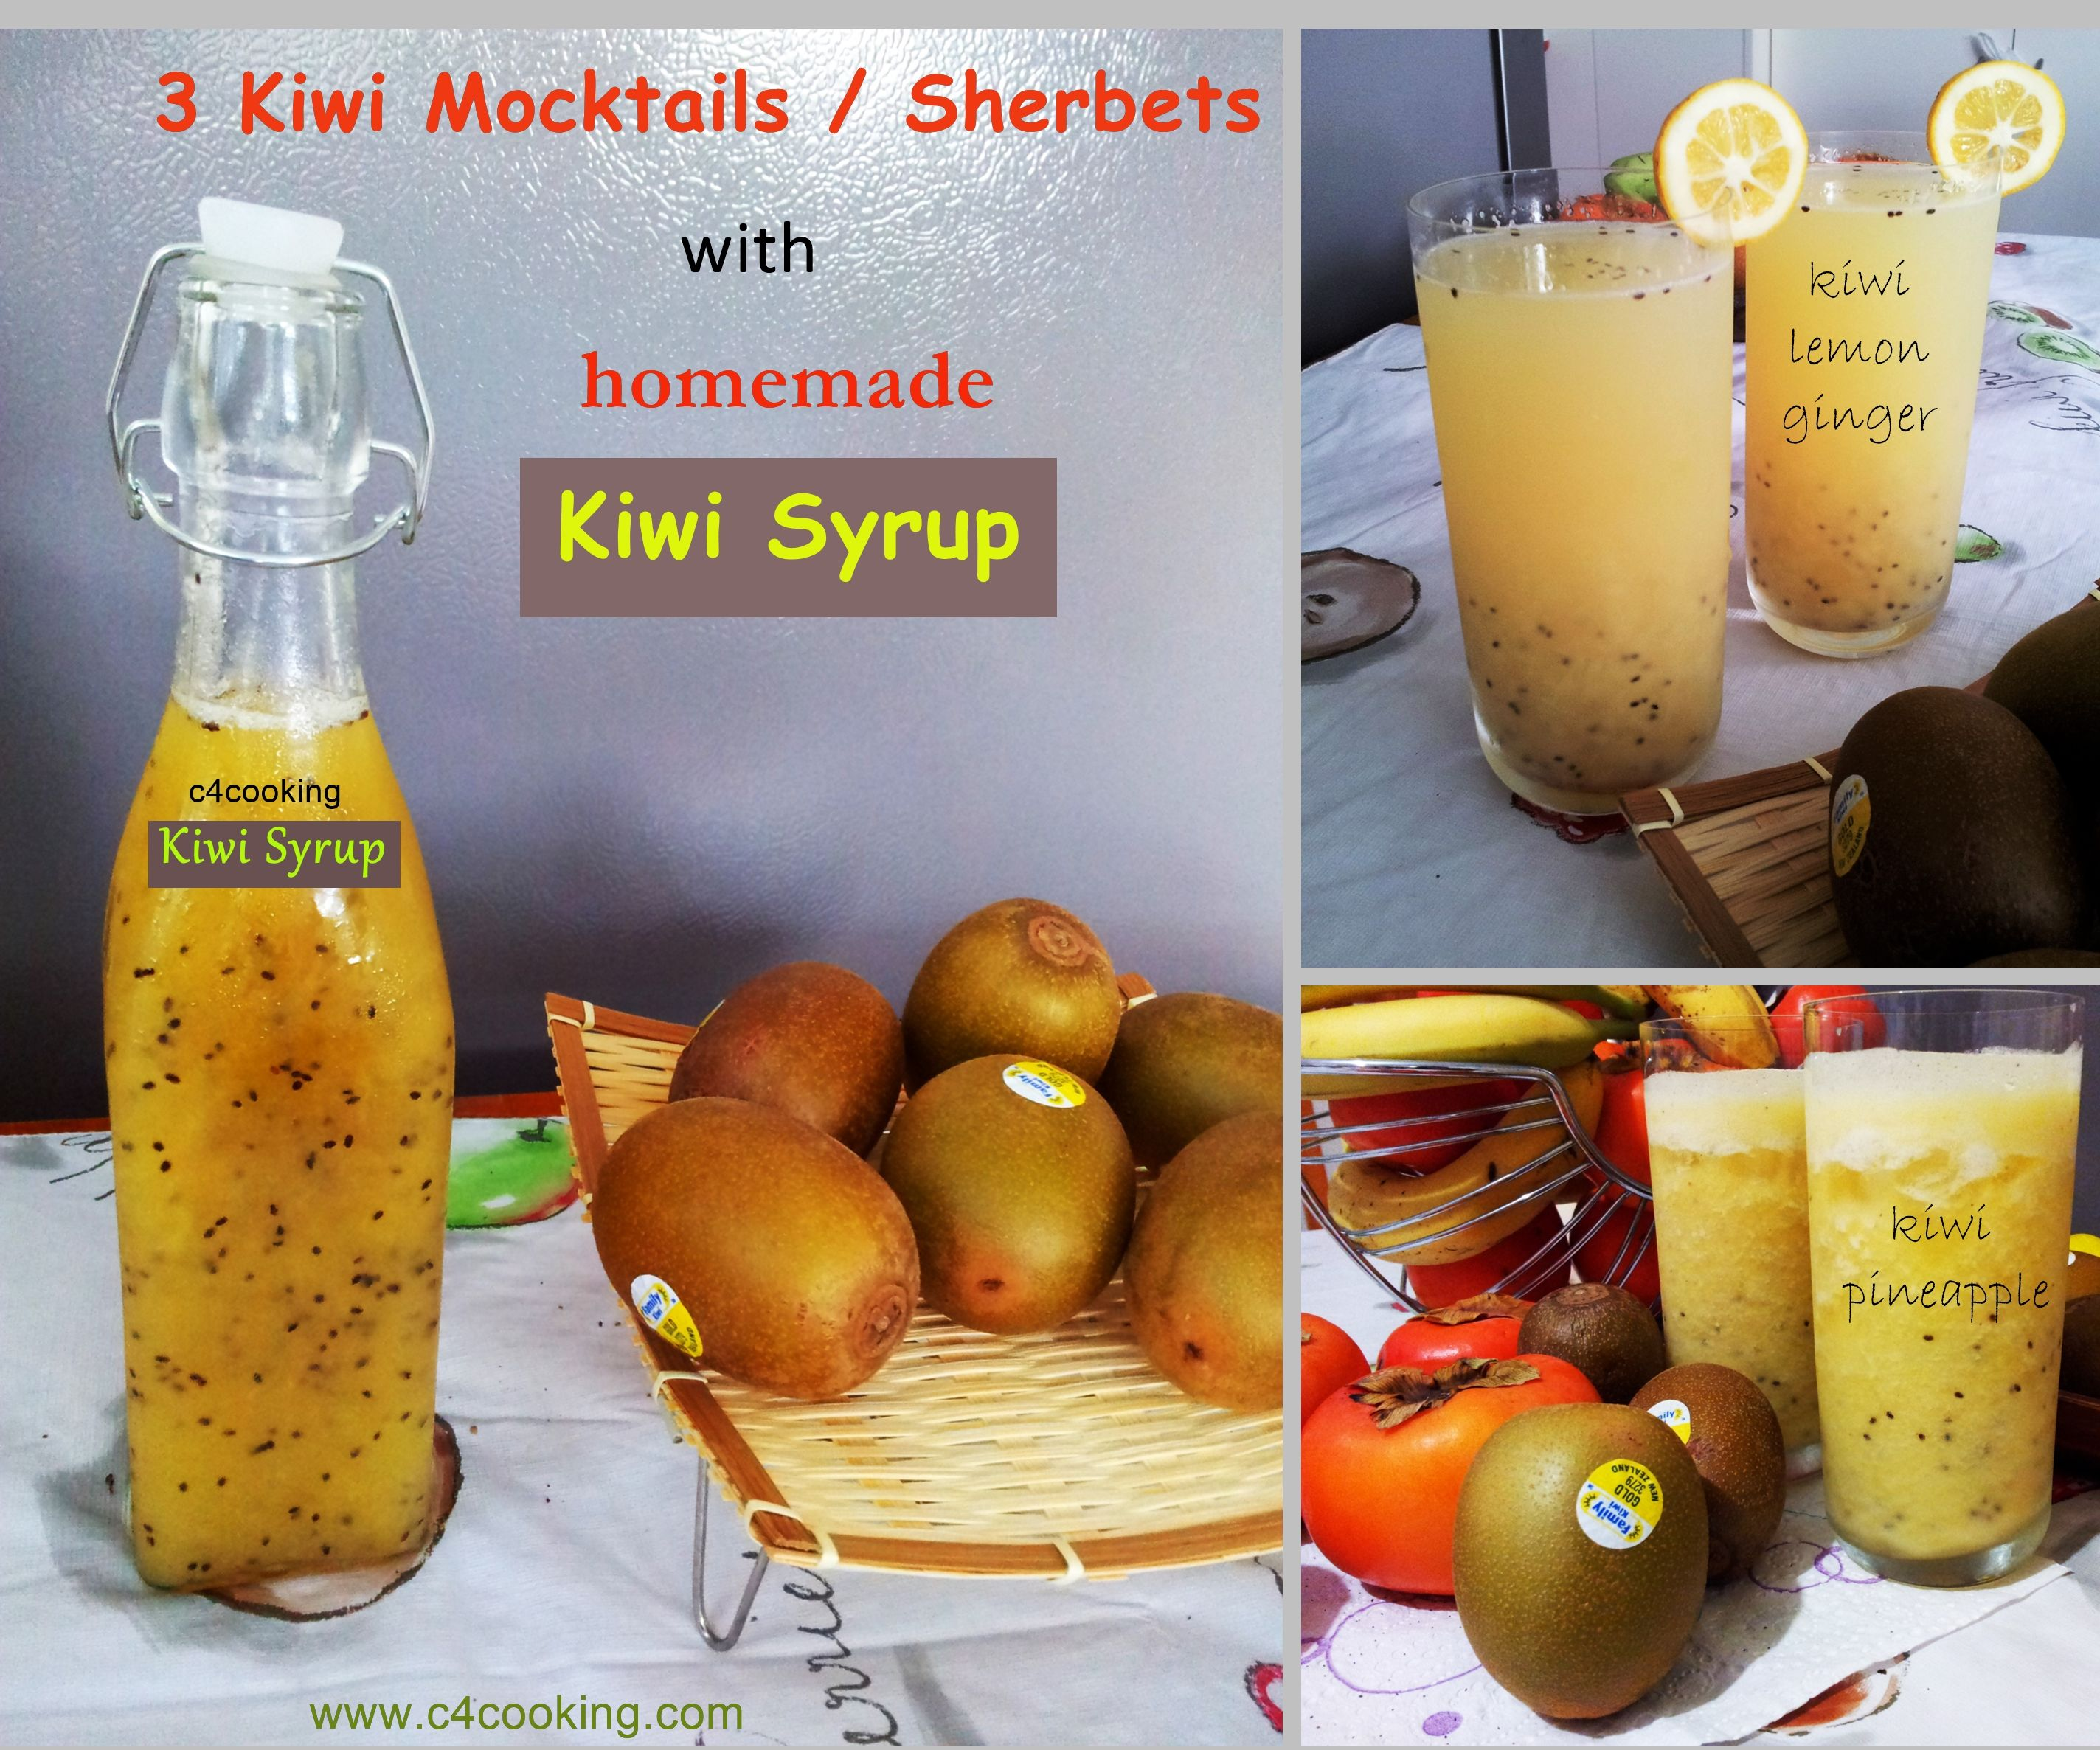 3 Refreshing Kiwi Mocktails / Sherbets With Homemade Kiwi Syrup